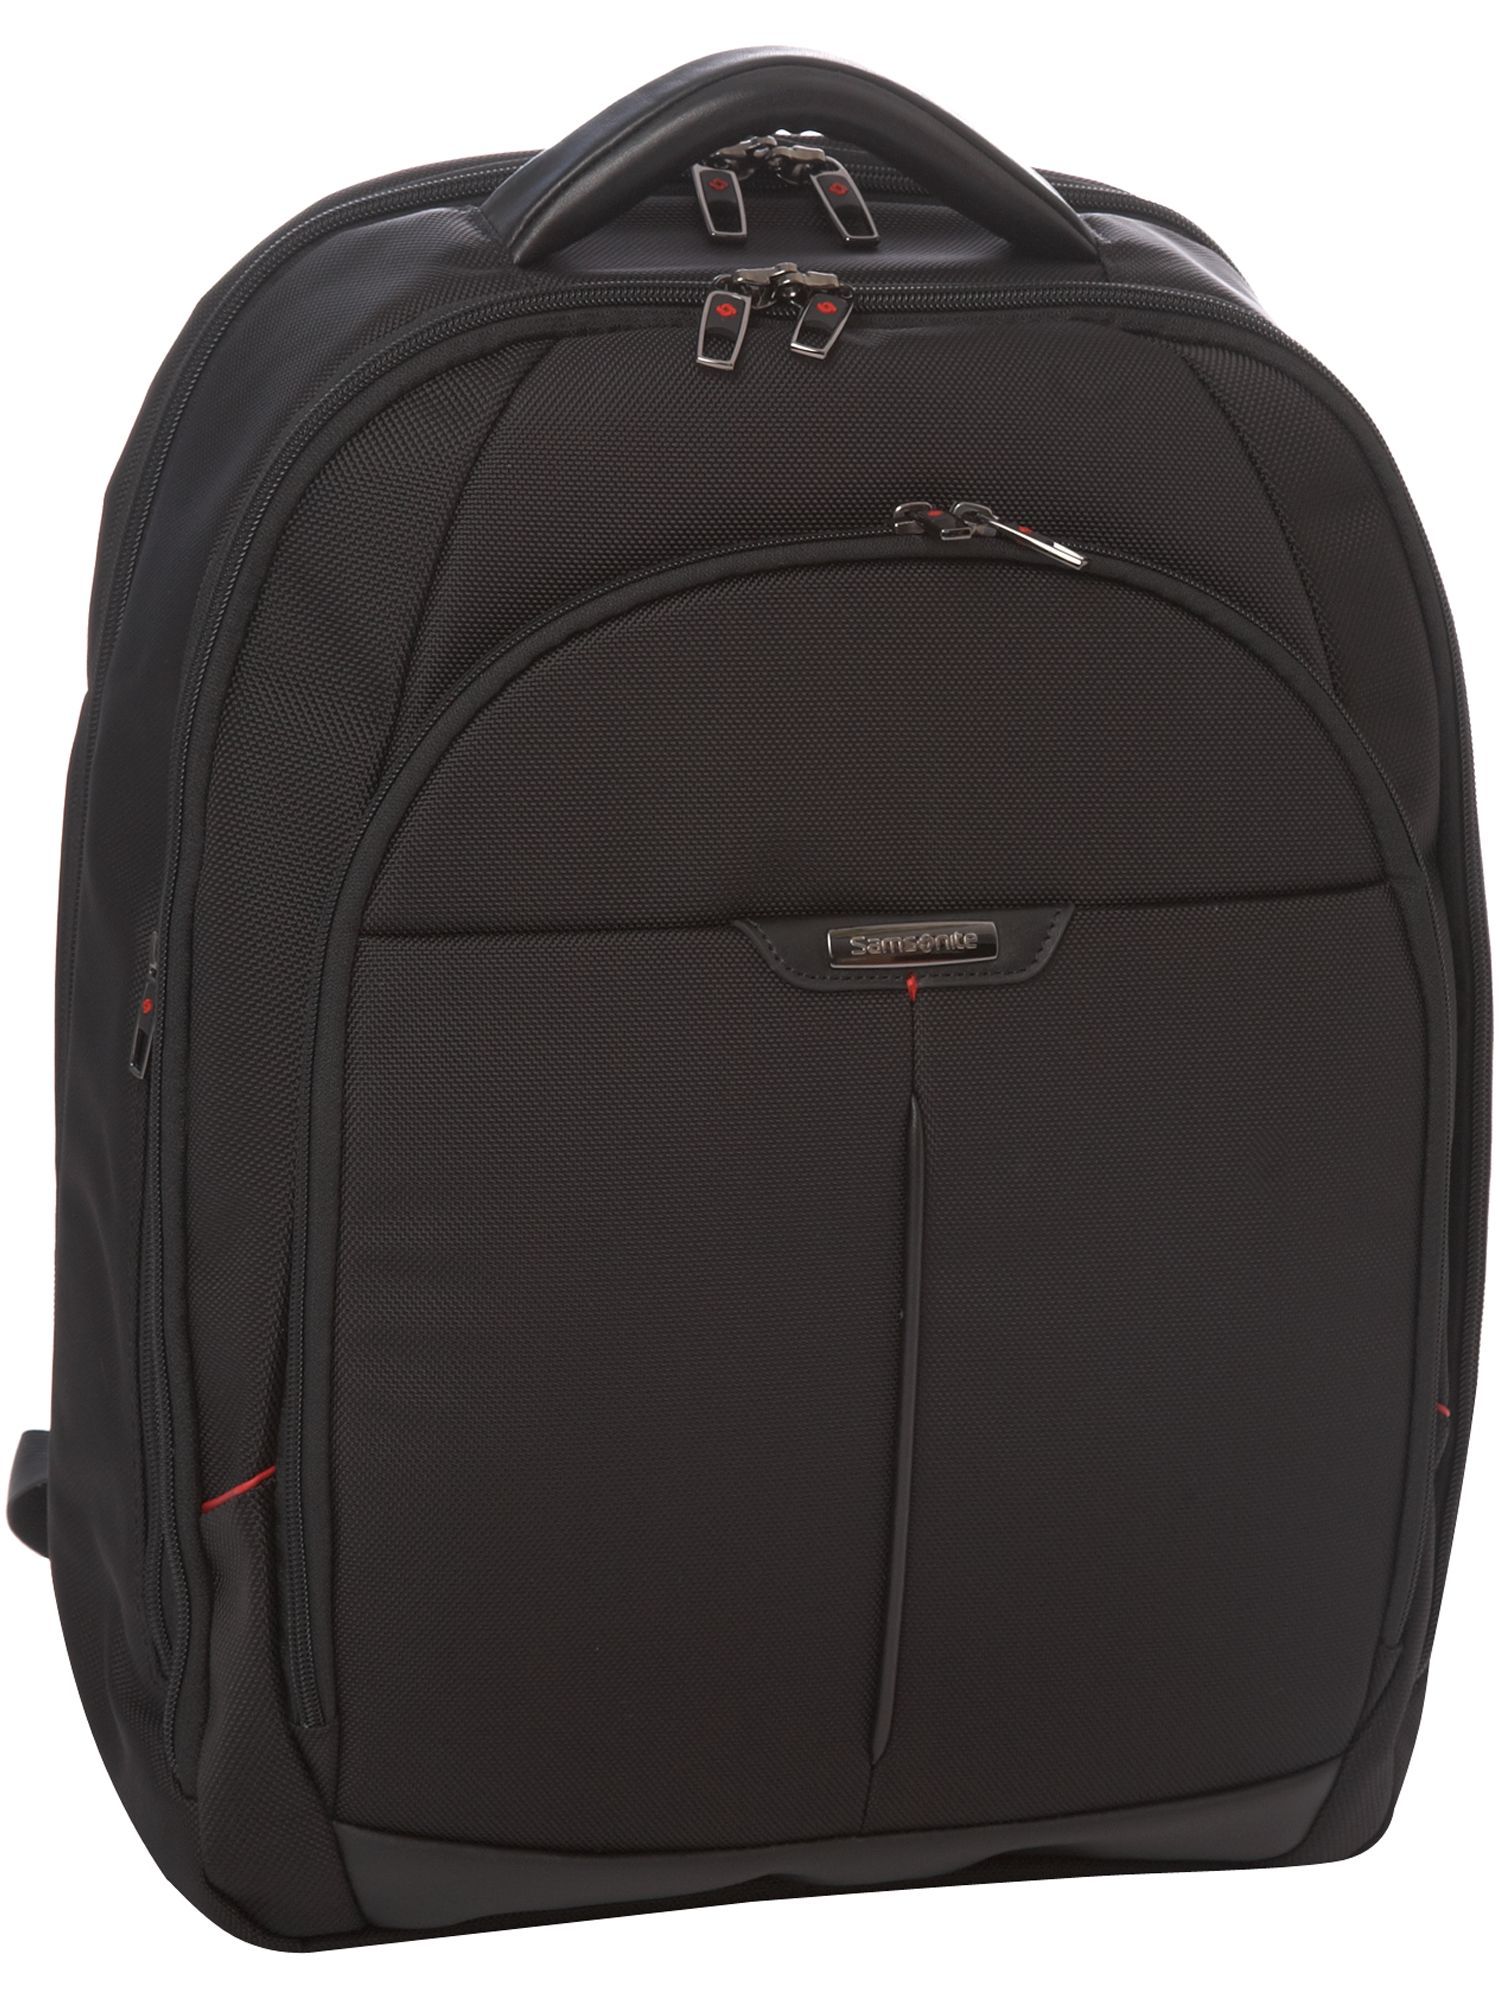 Pro-DLX laptop backpack